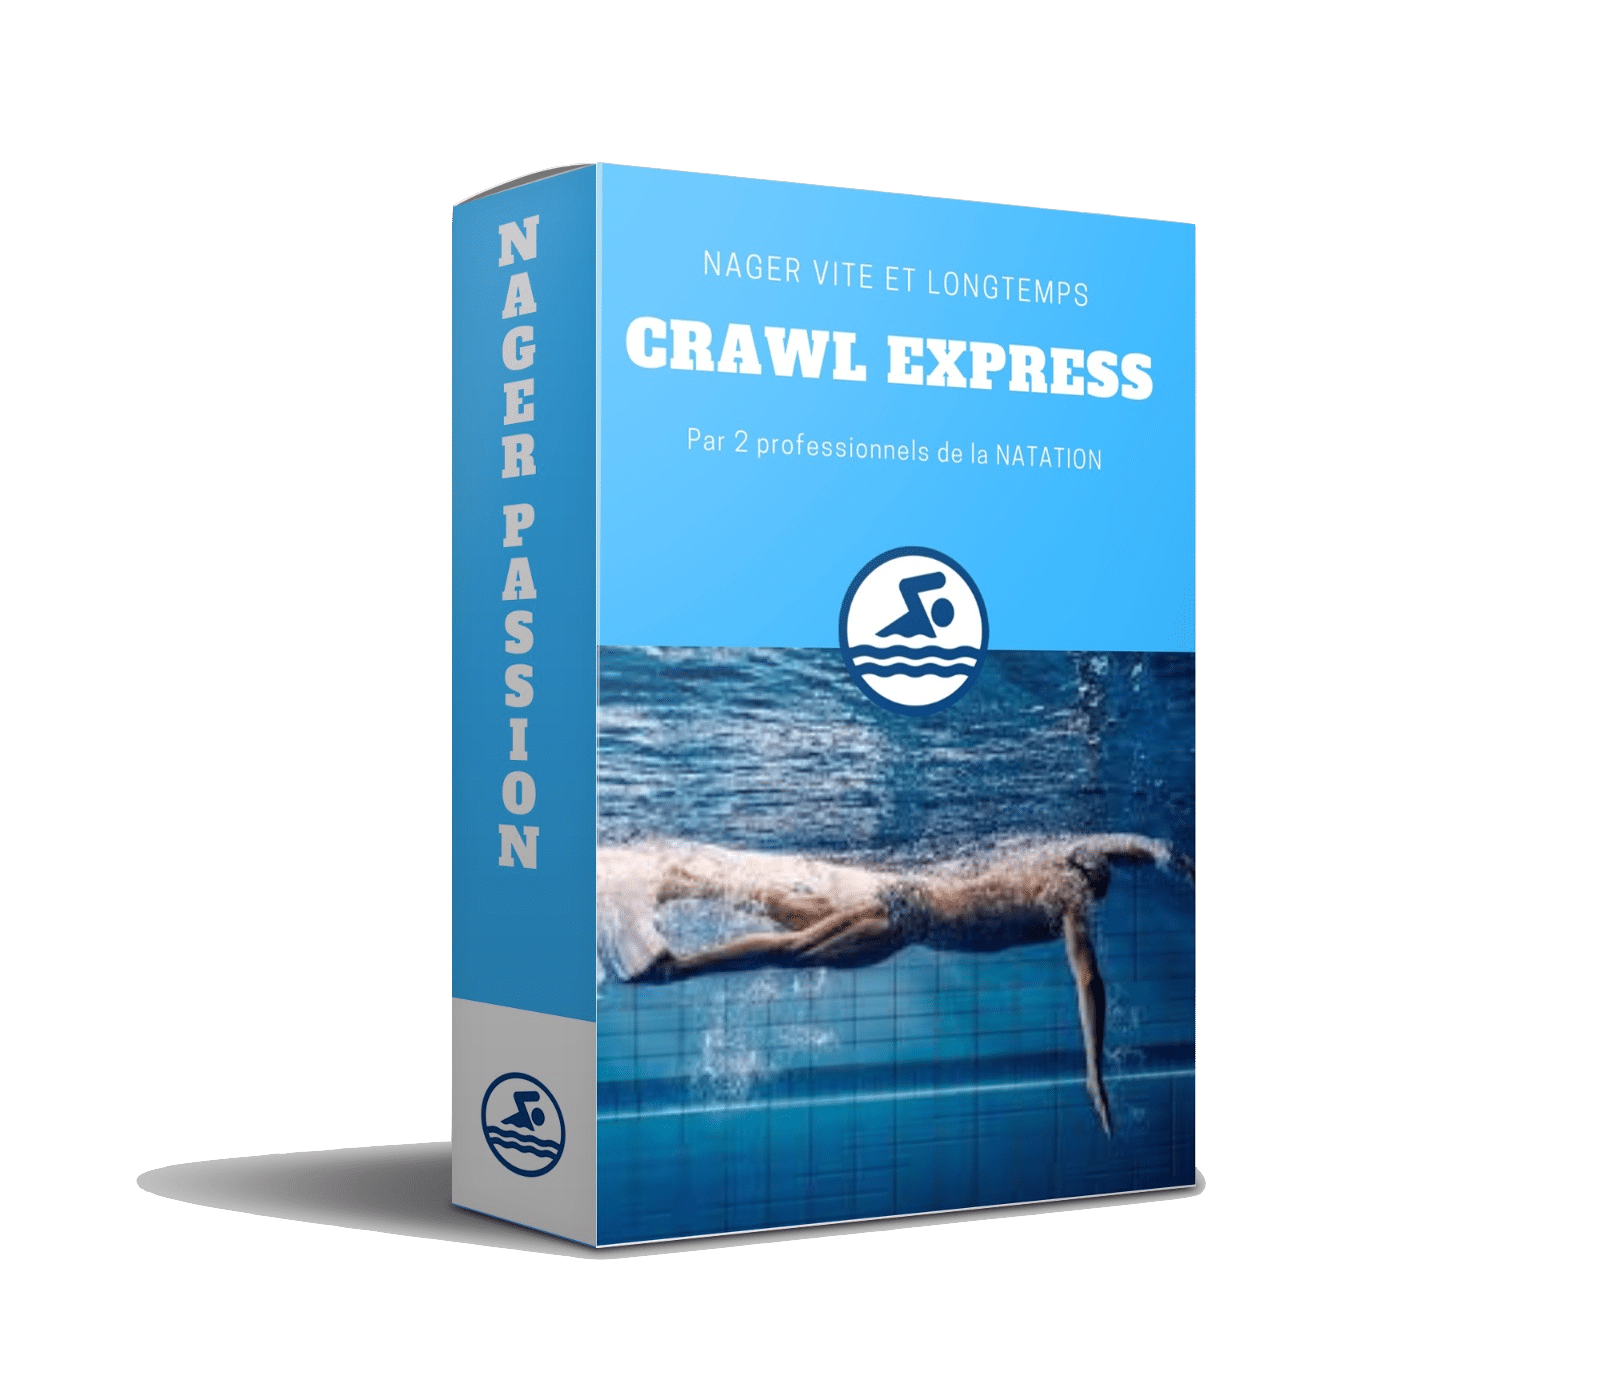 programme natation craw lexpress DVD